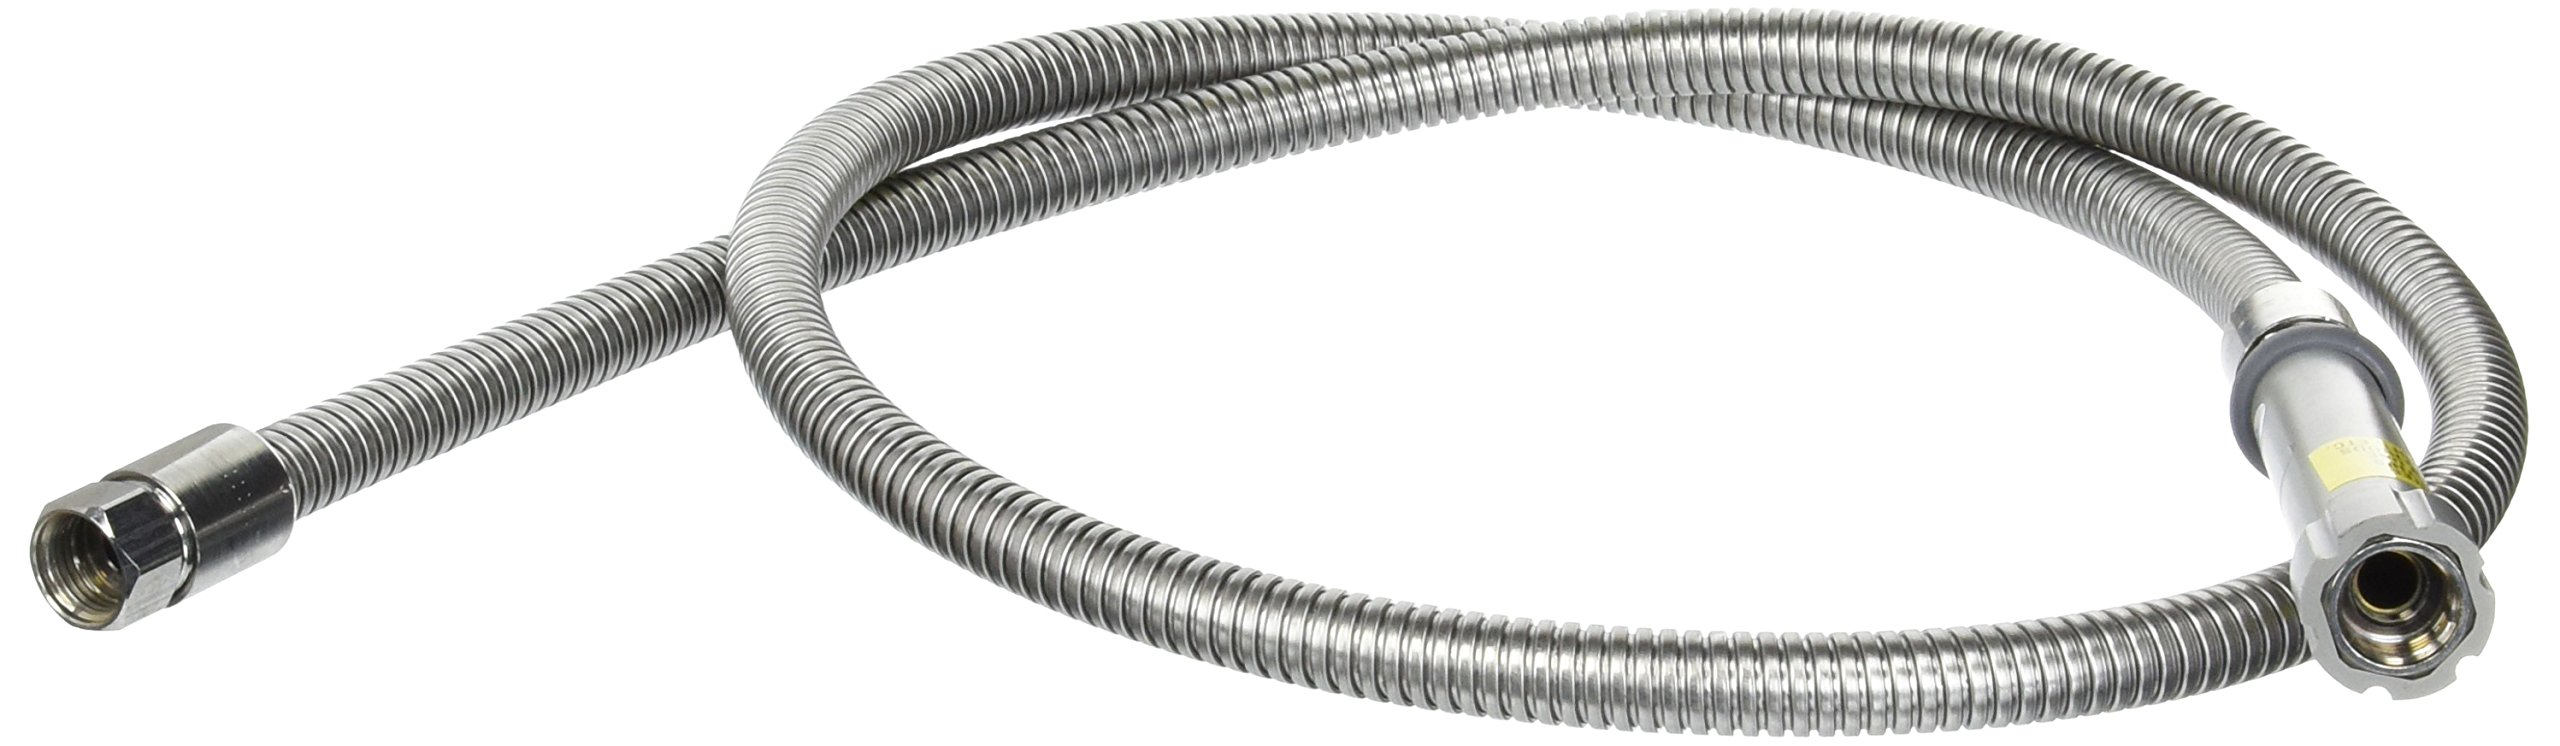 TS Brass B-68-H 68-Inch Pre-Rinse Hose, Stainless Steel by T&S Brass